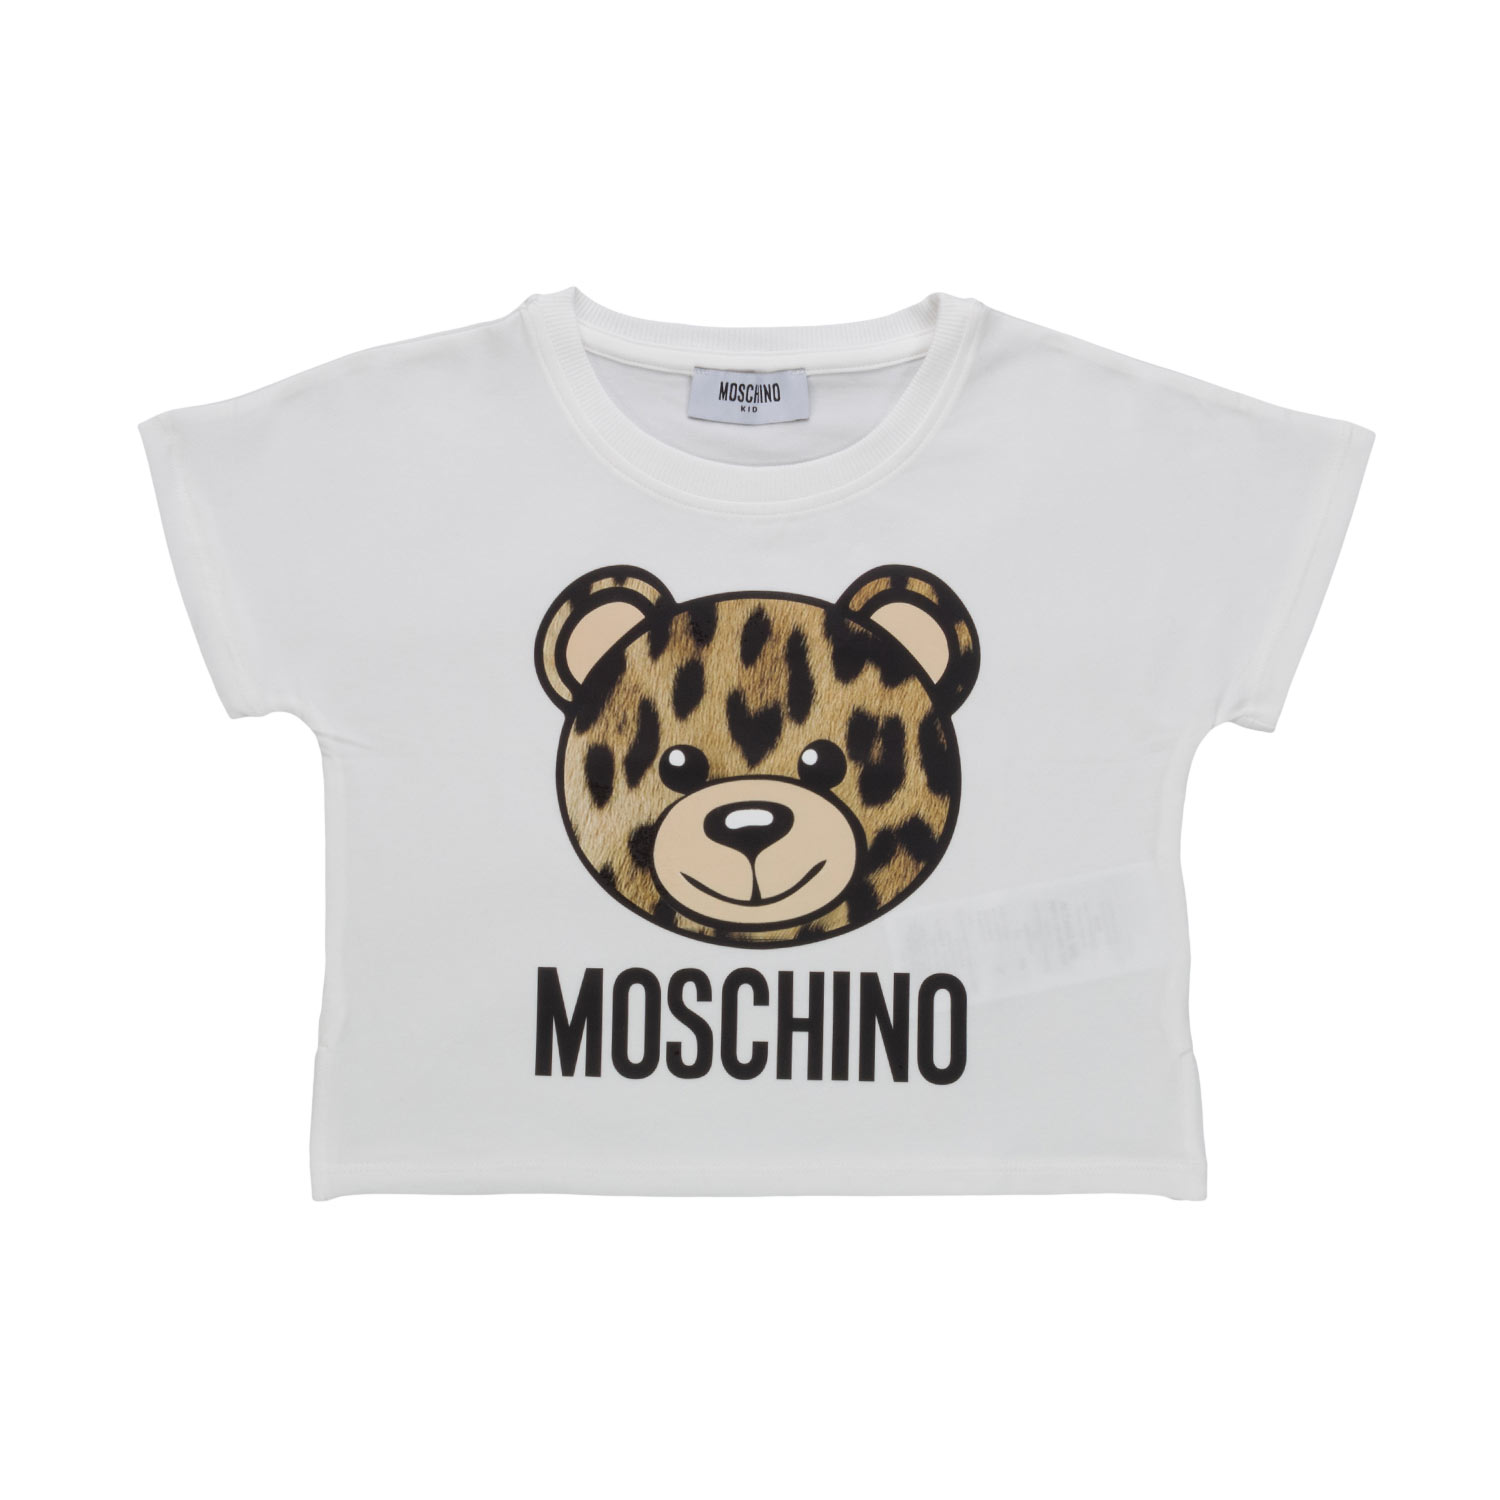 652c252dc75 Moschino - White Crop Top For Girls - annameglio.com shop online